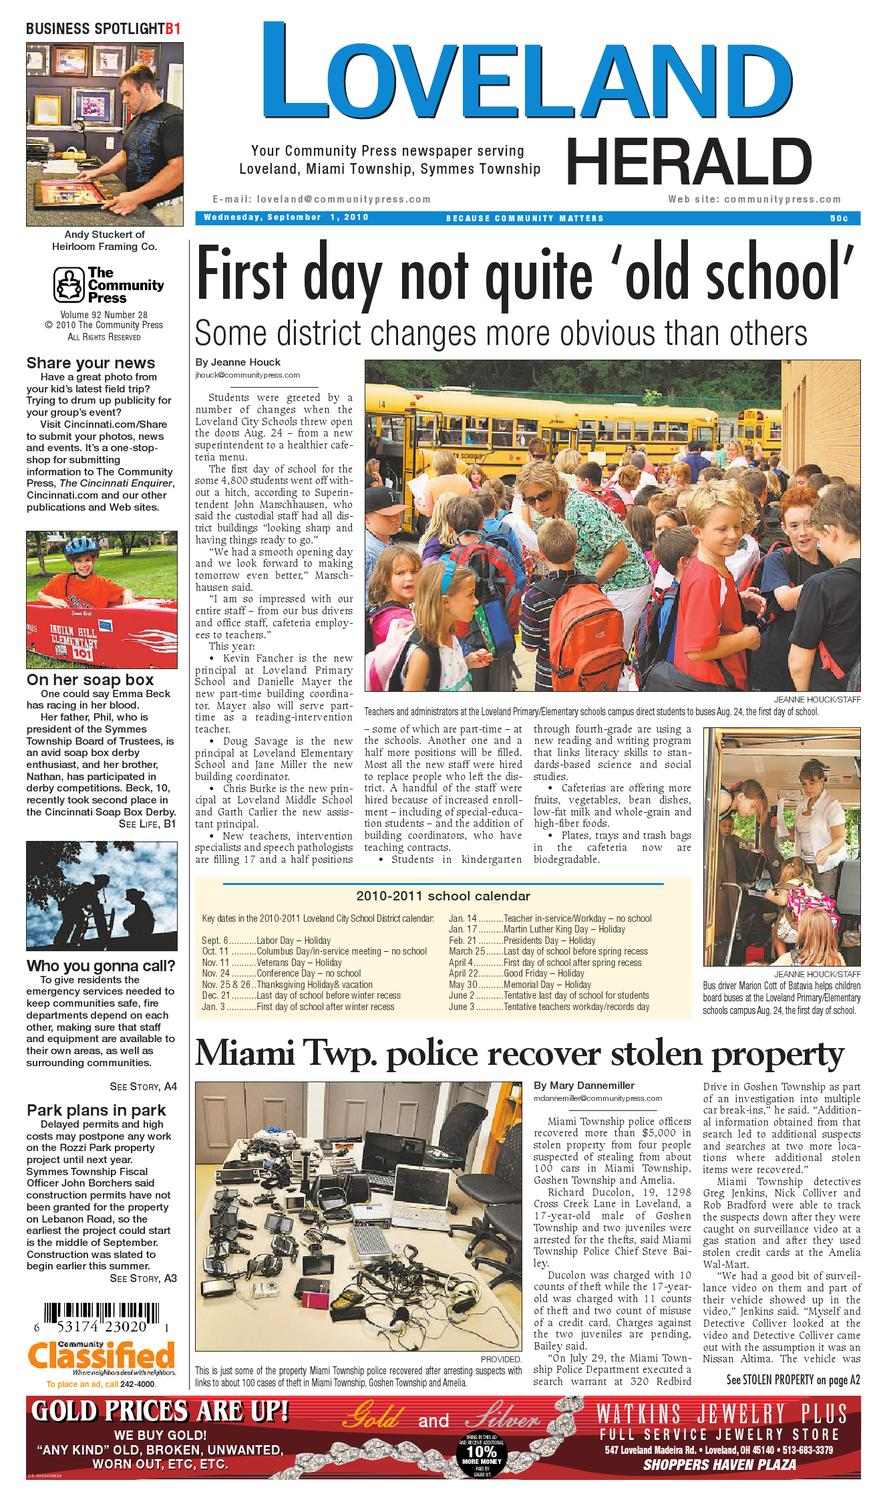 loveland-herald-090110 by Enquirer Media - issuu